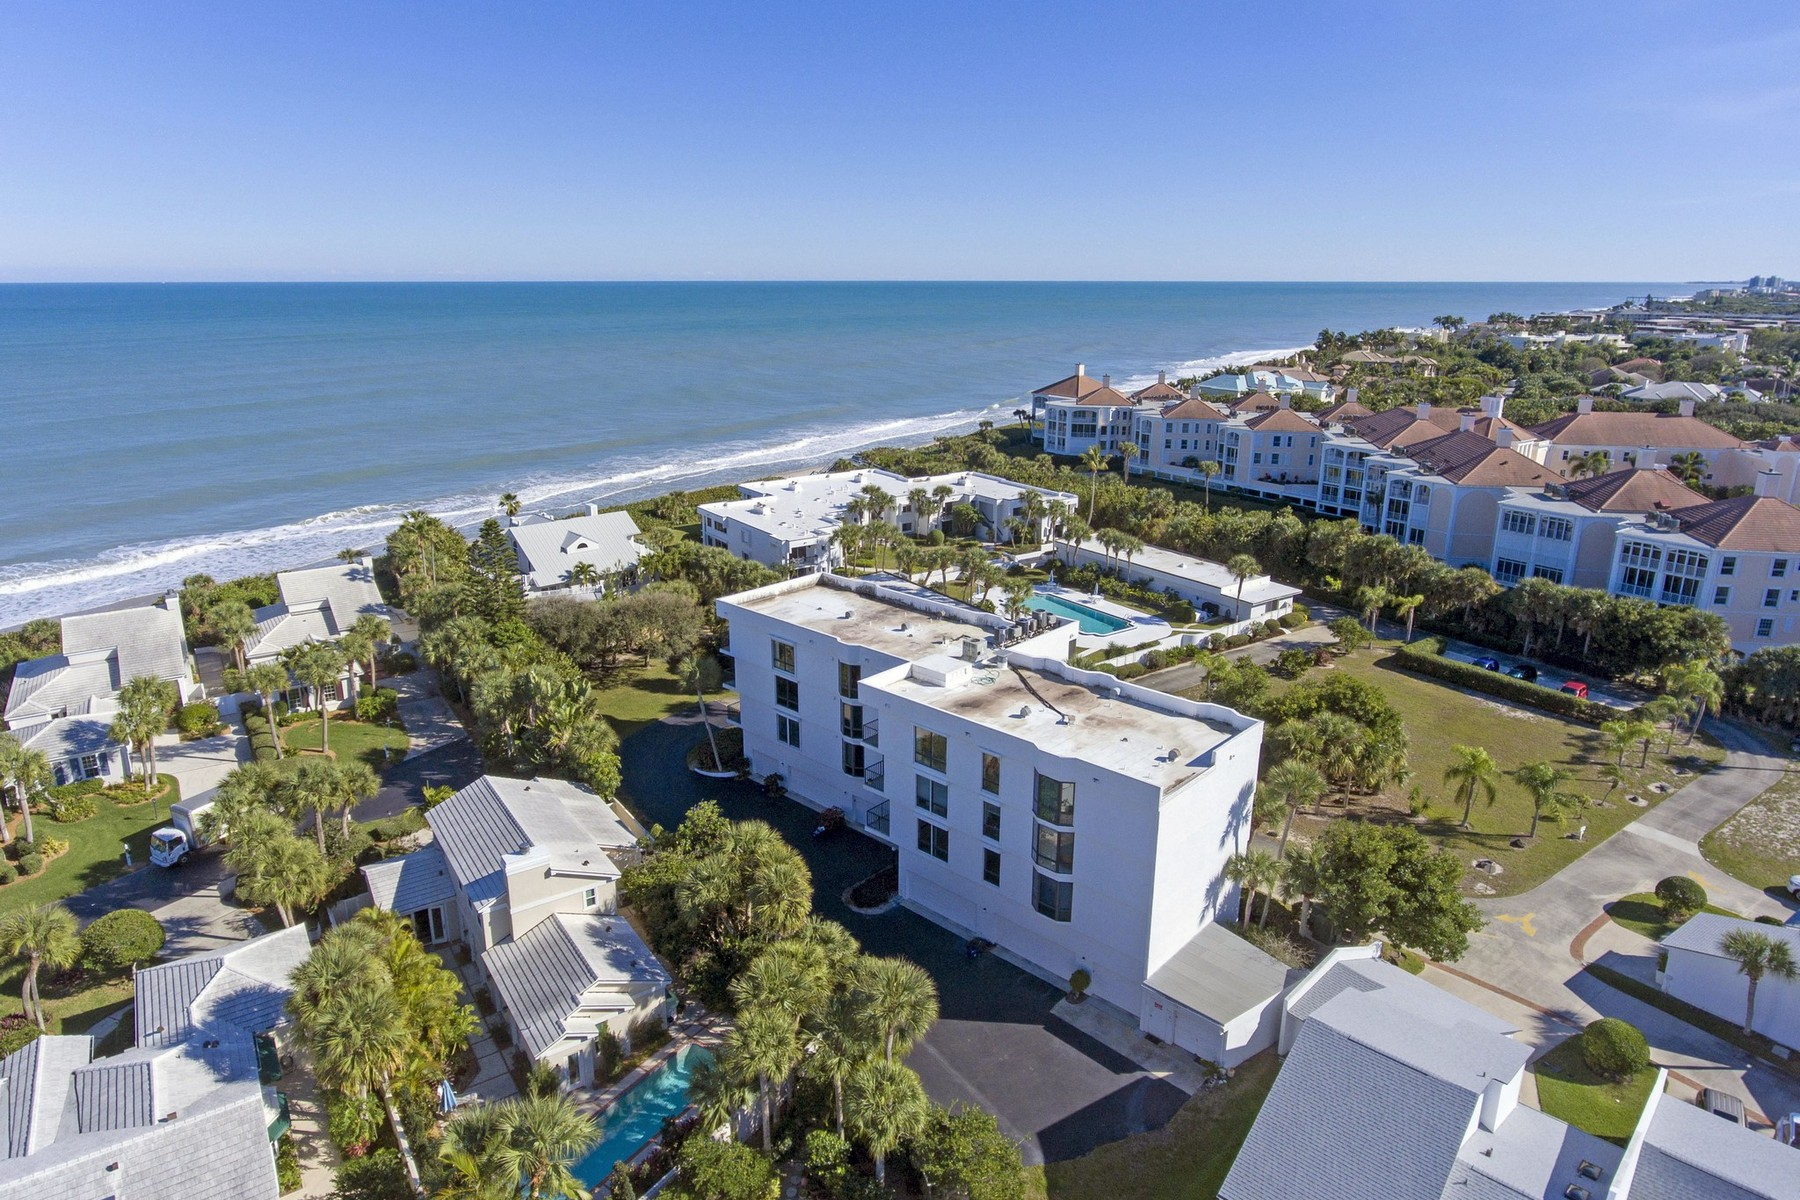 Condominium for Sale at Second Floor Condo With Ocean Views 5810 Highway A1A #2B Vero Beach, Florida 32963 United States